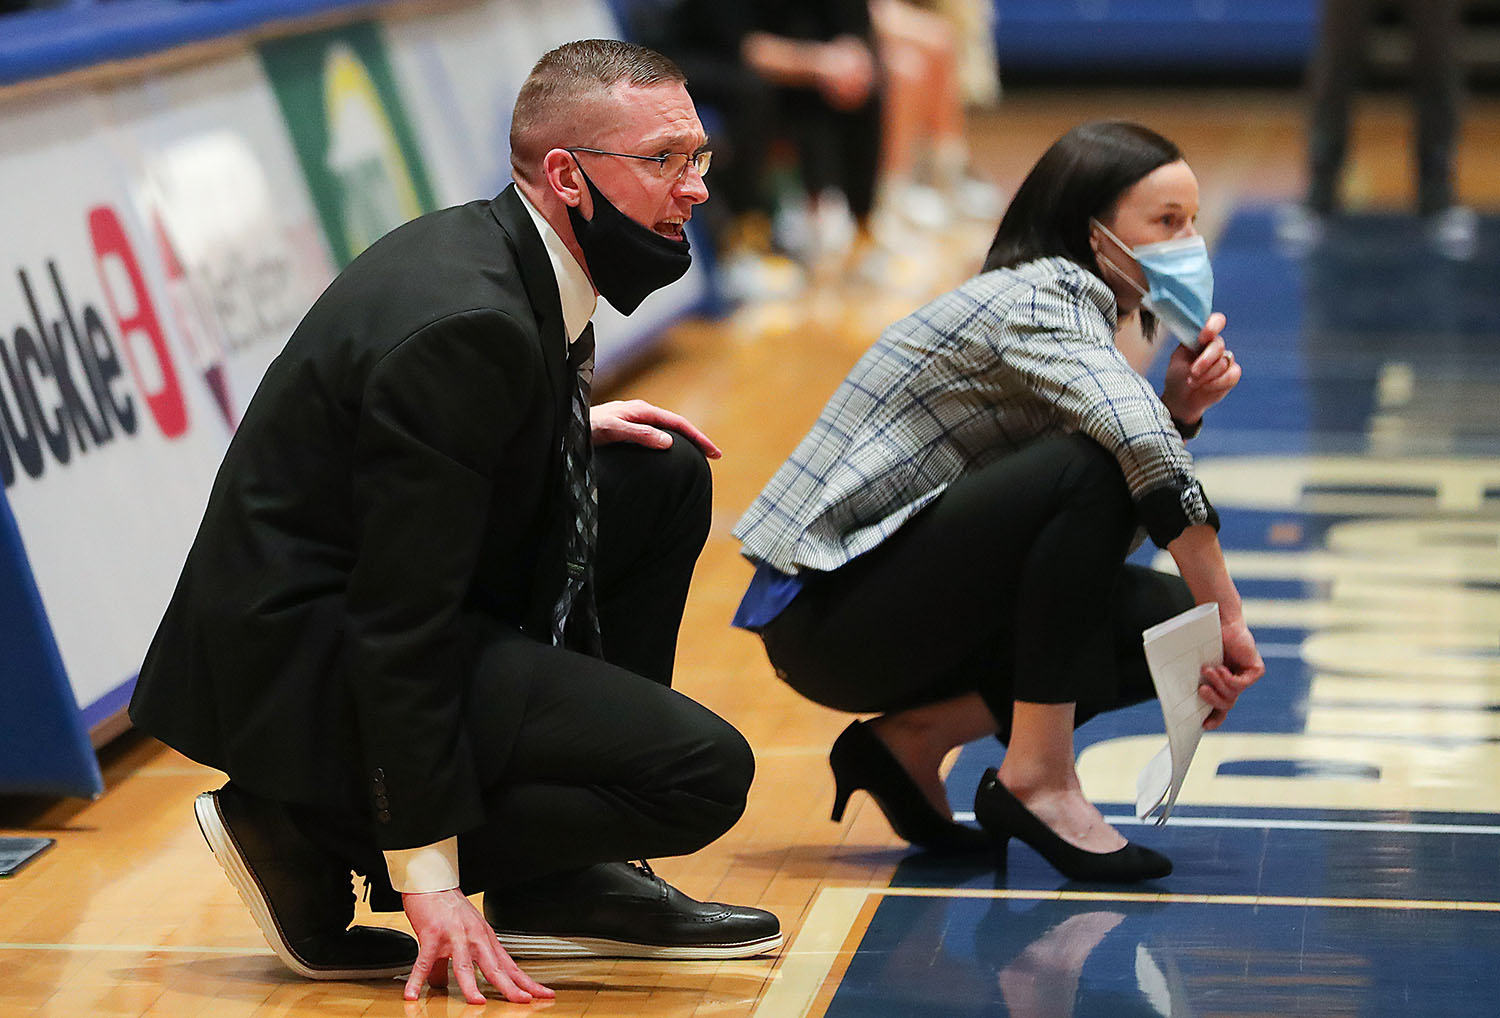 Devin and Carrie Eighmey lead the UNK women's basketball team during a Jan. 28 home game against Fort Hays State. The Lopers (16-2) are ranked 13th nationally in the WBCA Coaches Poll and 15th in the D2SIDA Media Poll.